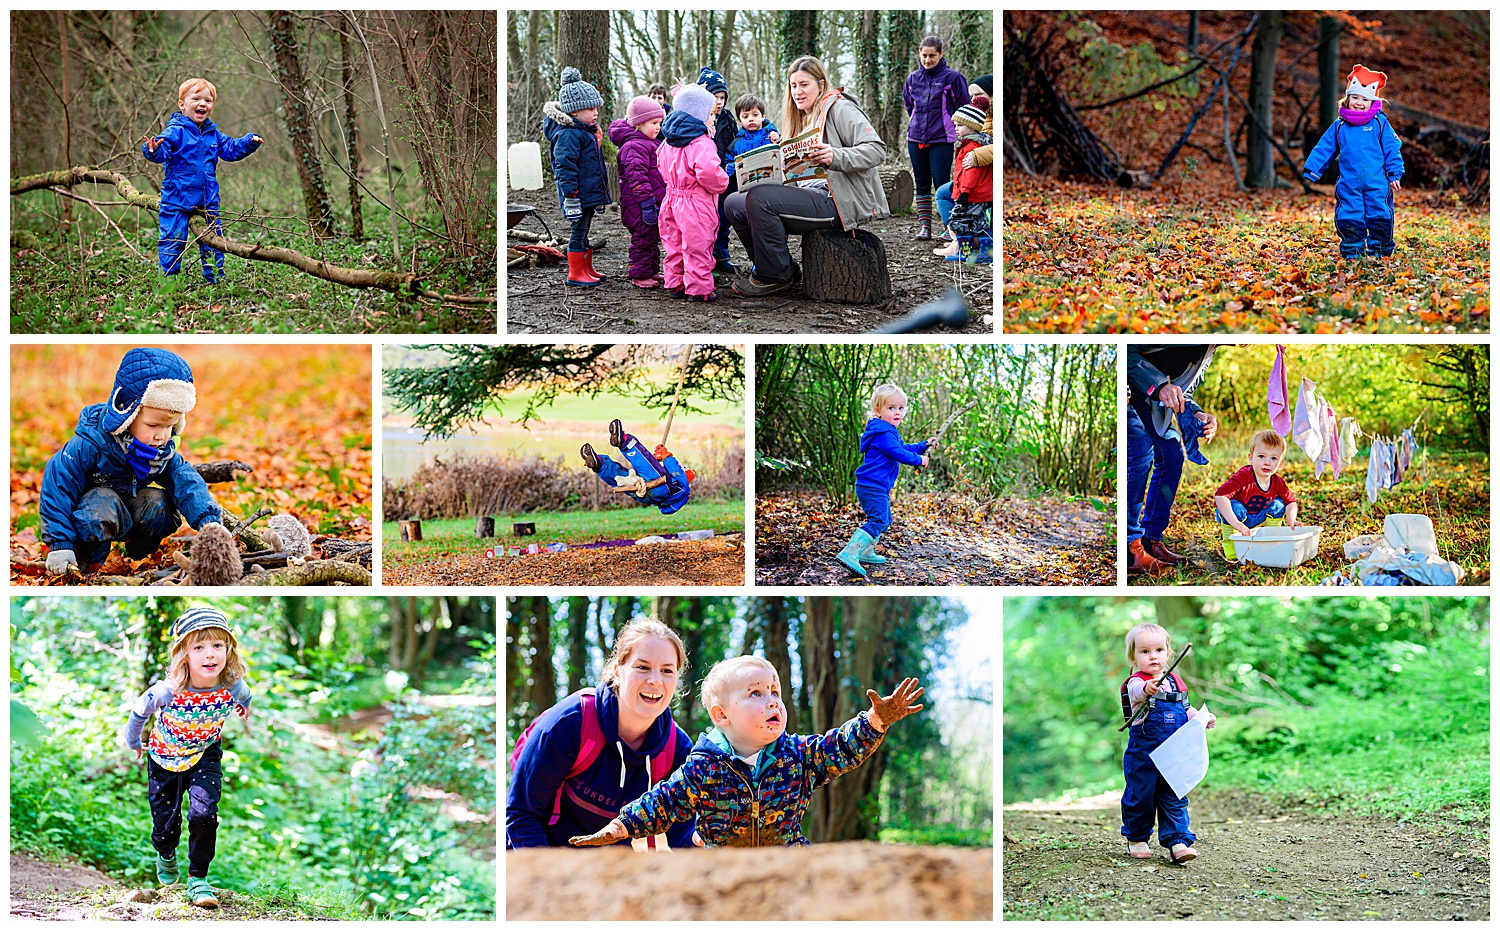 Montage of images of forest school activities from rope swings to tree climbing and orienteering.